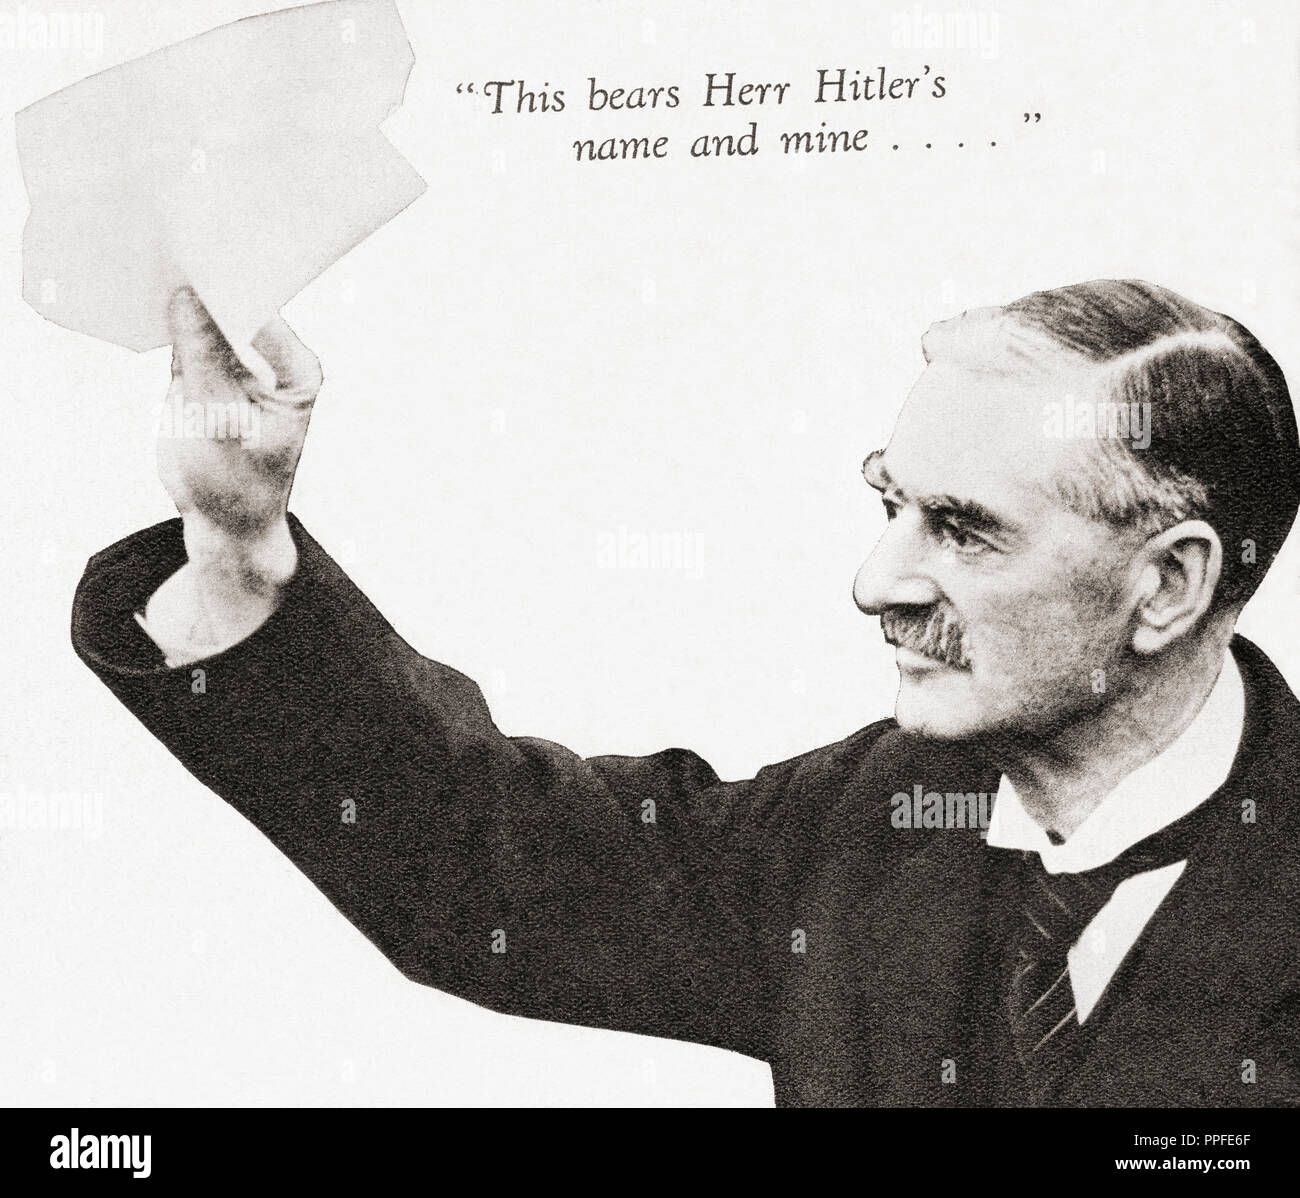 Neville Chamberlain holds the paper signed by both Hitler and himself on his return from Munich to Heston Aerodrome, after their meeting in September 1938.  Arthur Neville Chamberlain, 1869 – 1940. British Conservative Party statesman and Prime Minister of the United Kingdom.  From These Tremendous Years, published 1938. - Stock Image